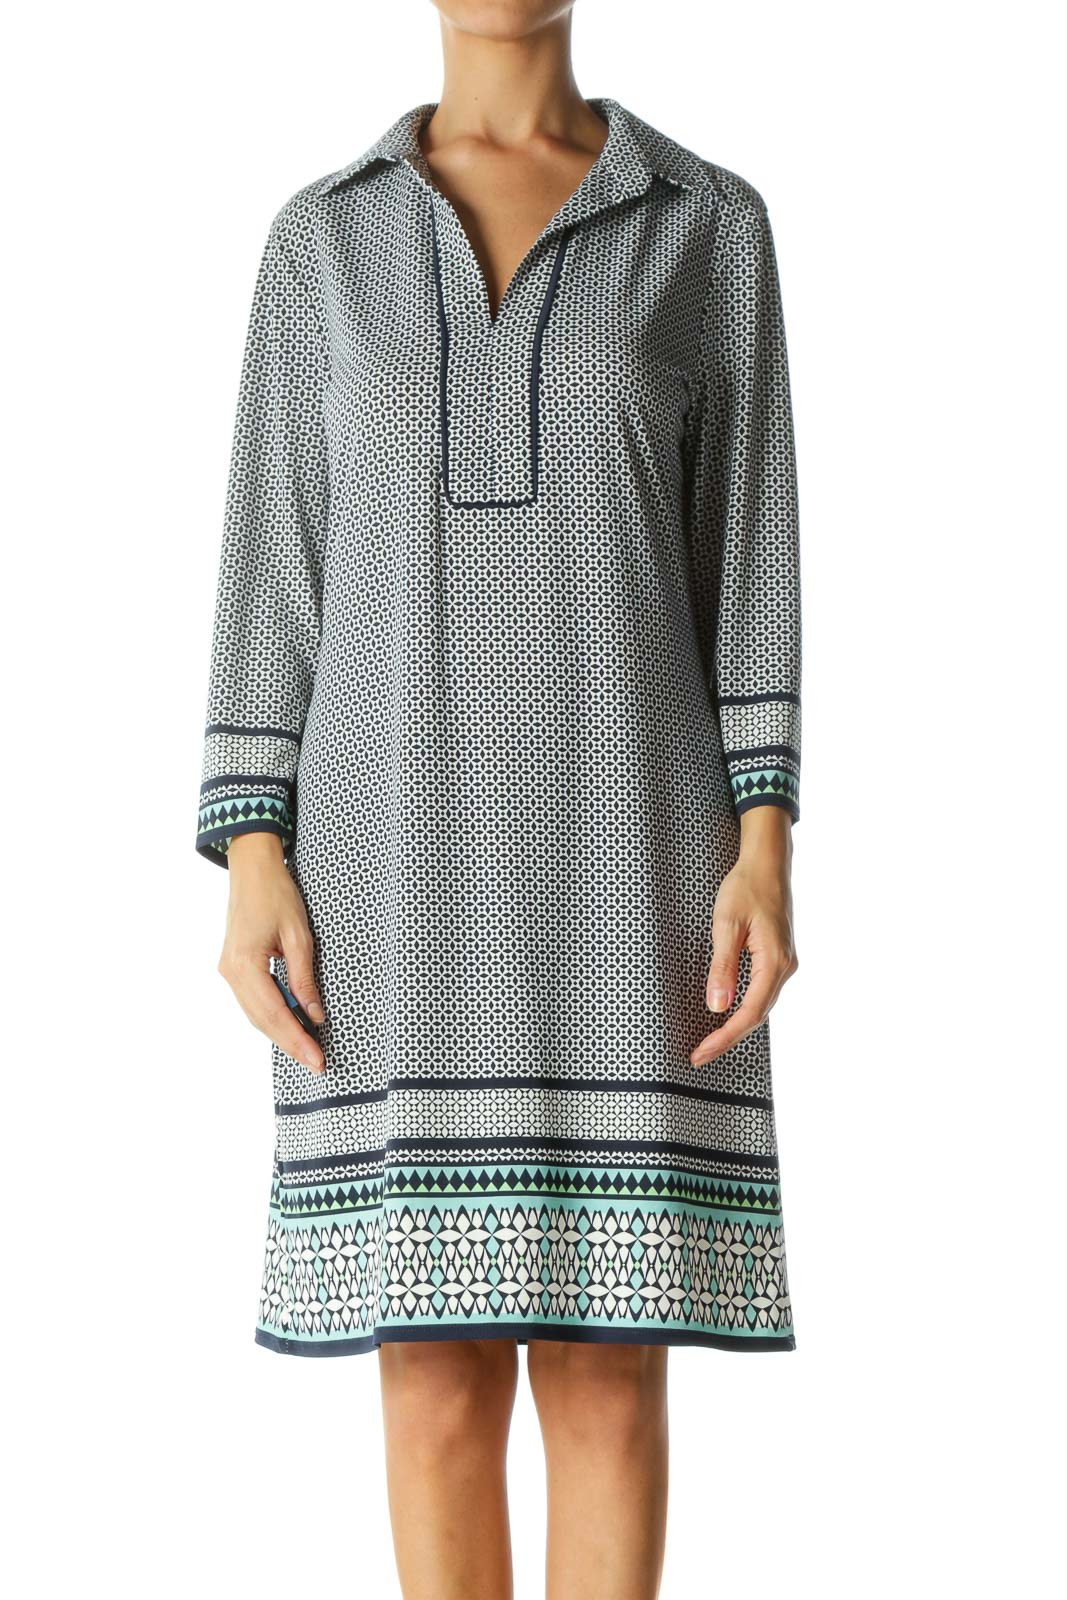 White and Navy Geometric Patterned Shift Dress